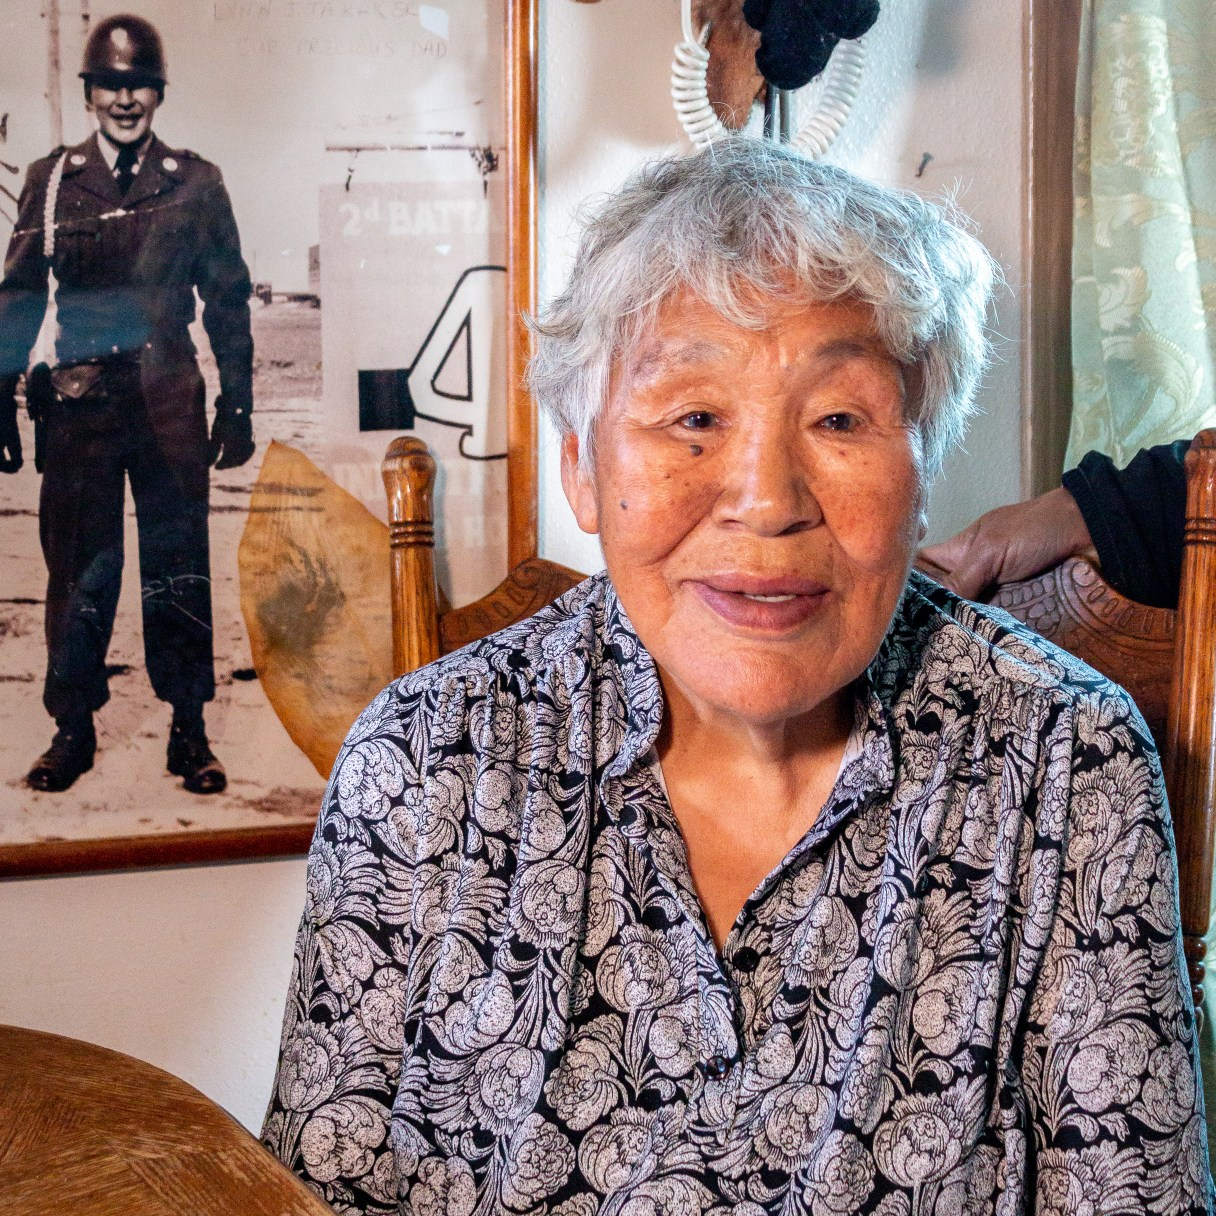 Elderly woman wearing floral-print shirt sits at table with black-and-white photo of man in uniform framed on wall behind her.